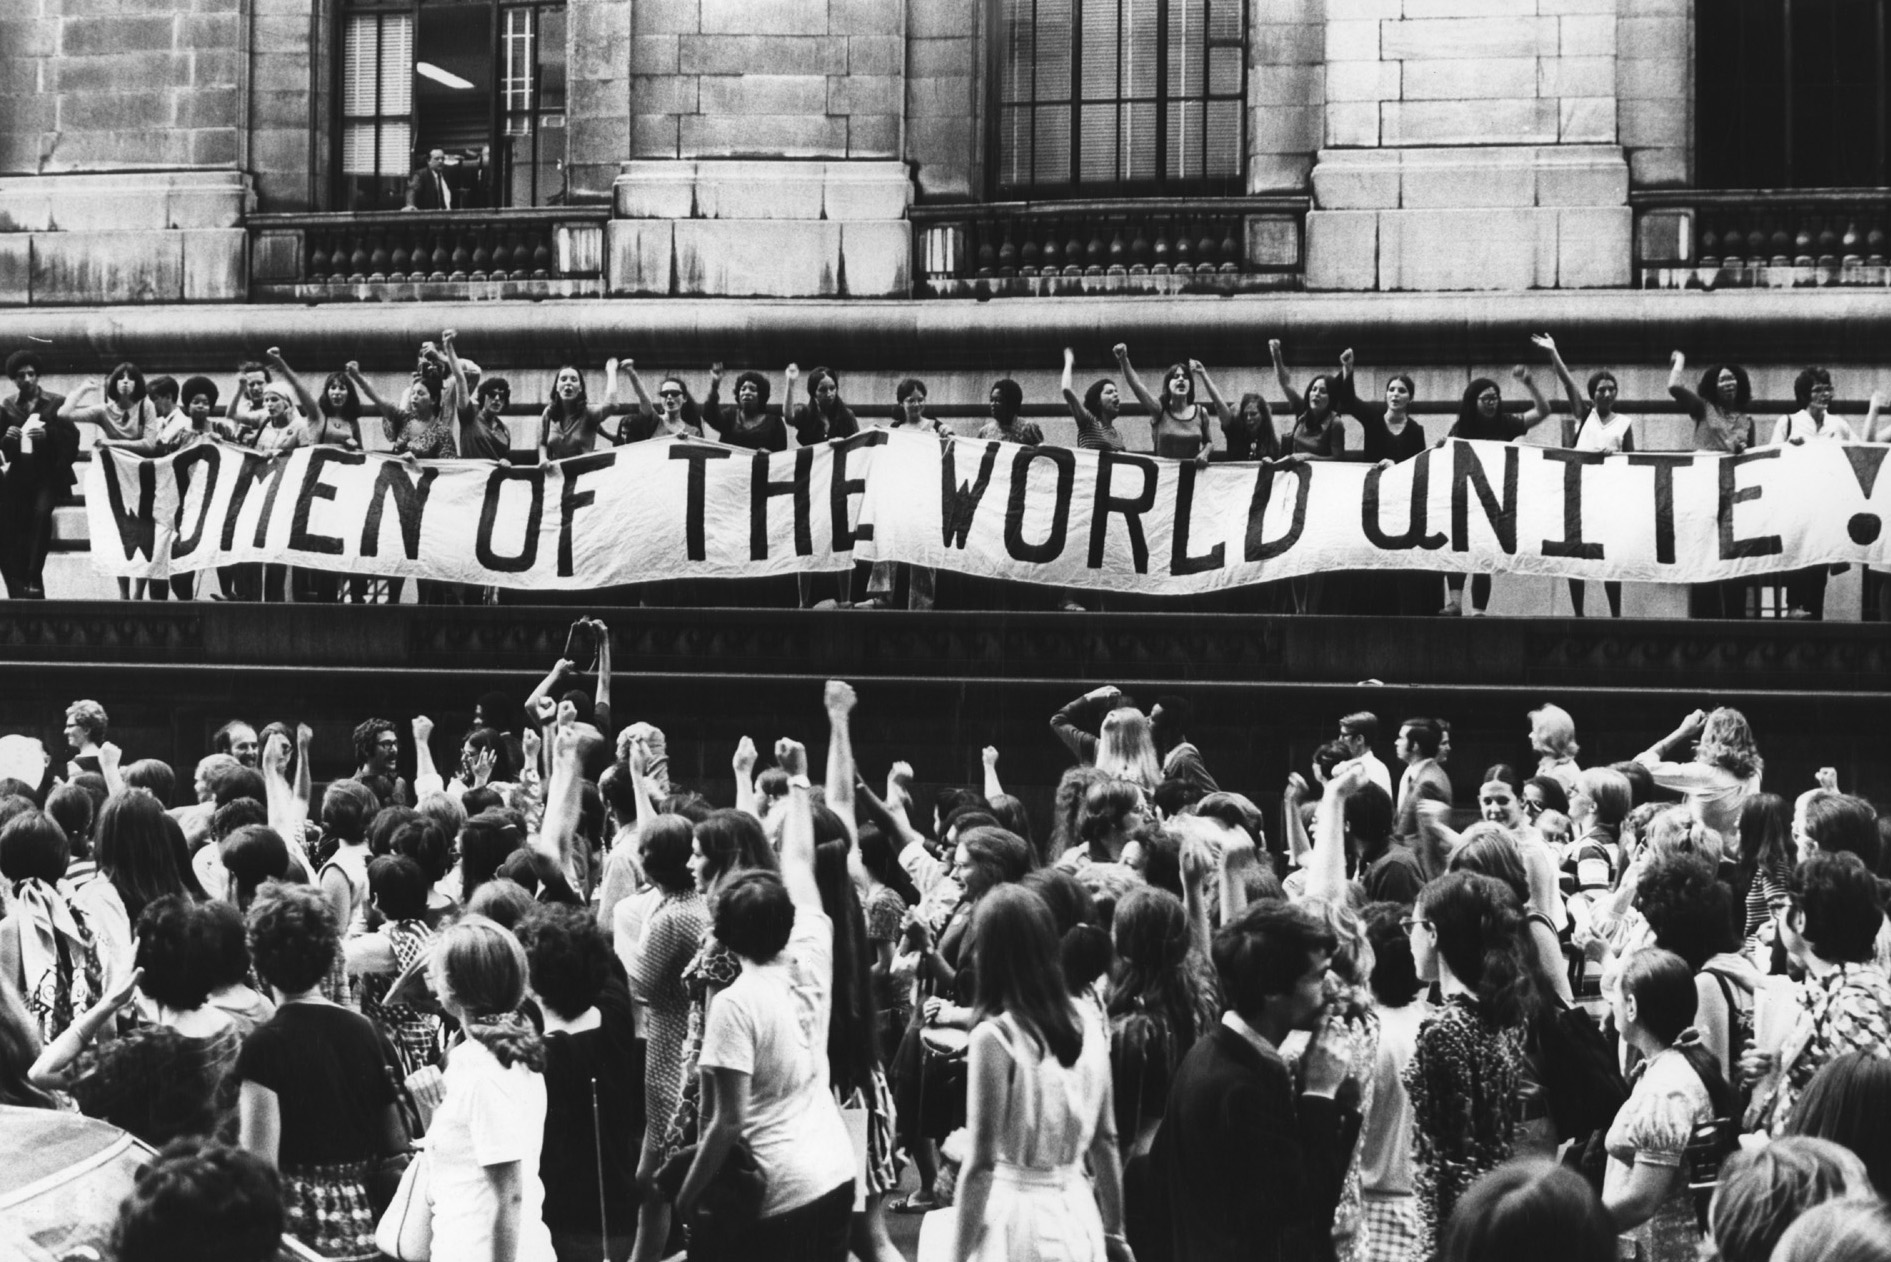 an overview of the feminist movement An overview of feminist theory that focuses specificially on feminist literary theory, its changes over time, and its relationship to gender theory the link address is:.